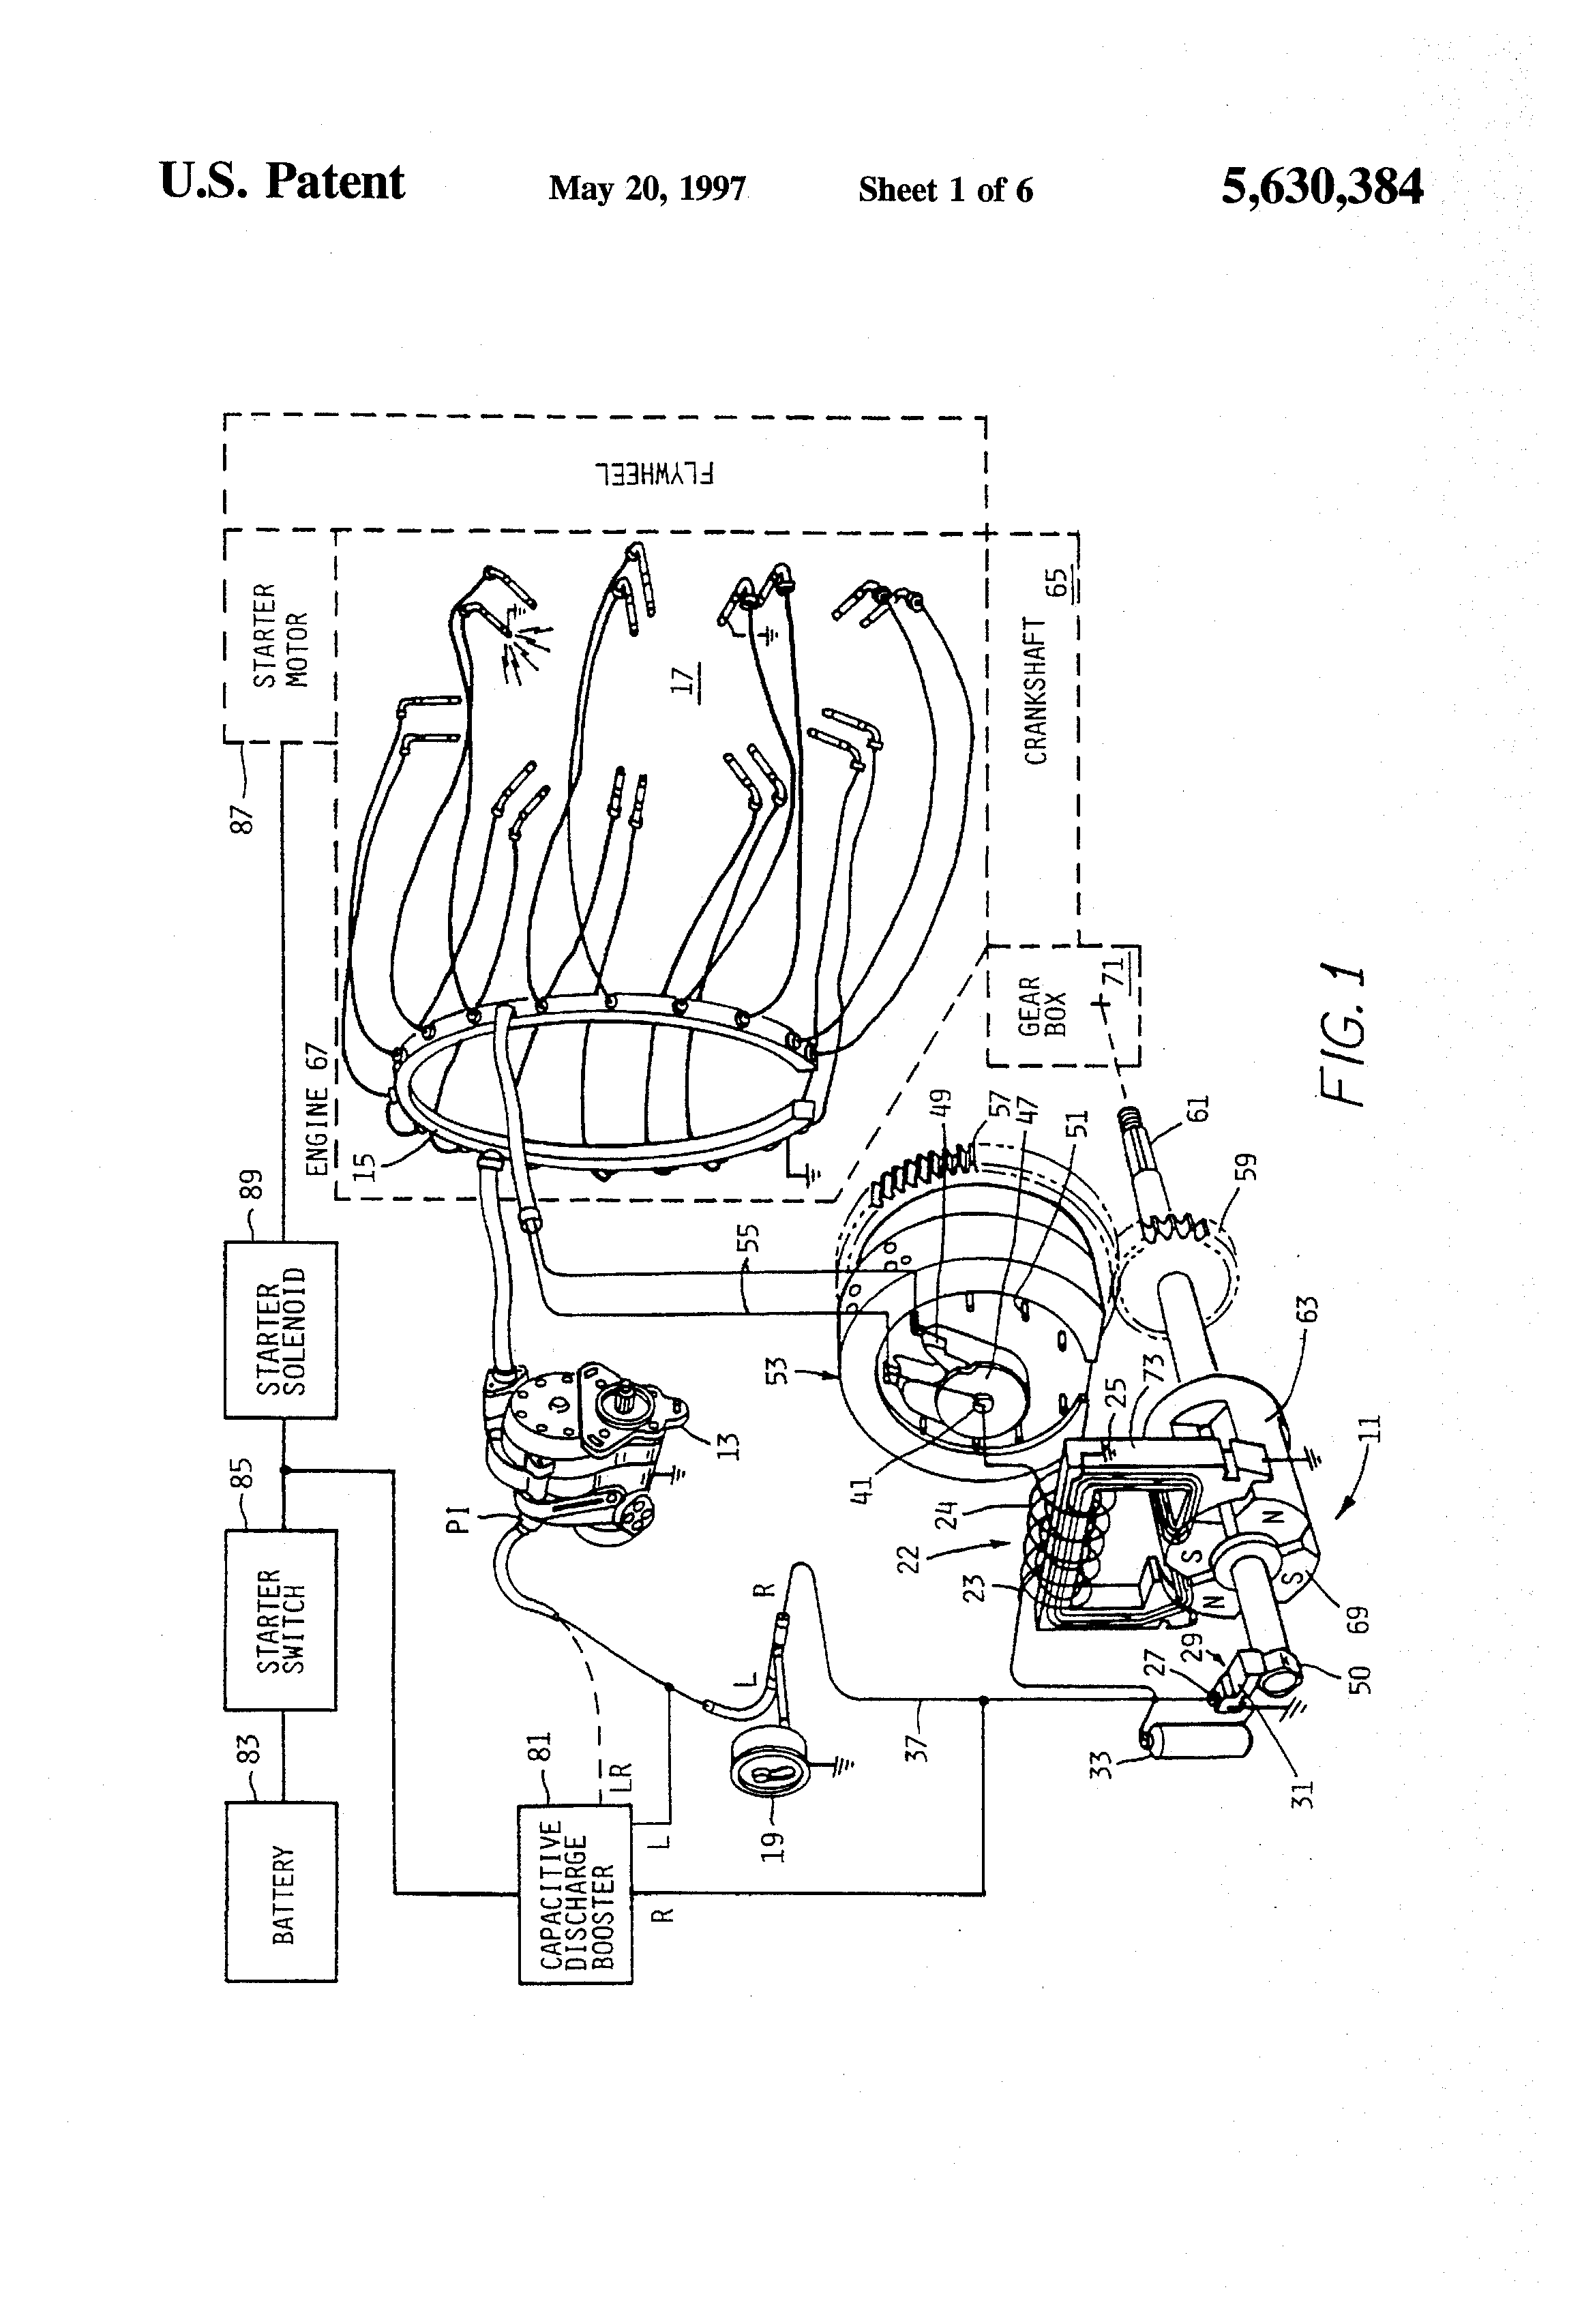 Bendix Mag o Harness moreover Slick Aircraft Mag O Diagram in addition Mag o Ignition Timer Wiring Diagram also Honda Jet Ski Schematics moreover Ly ing Mag o Wiring Diagram. on bendix magneto wiring diagram